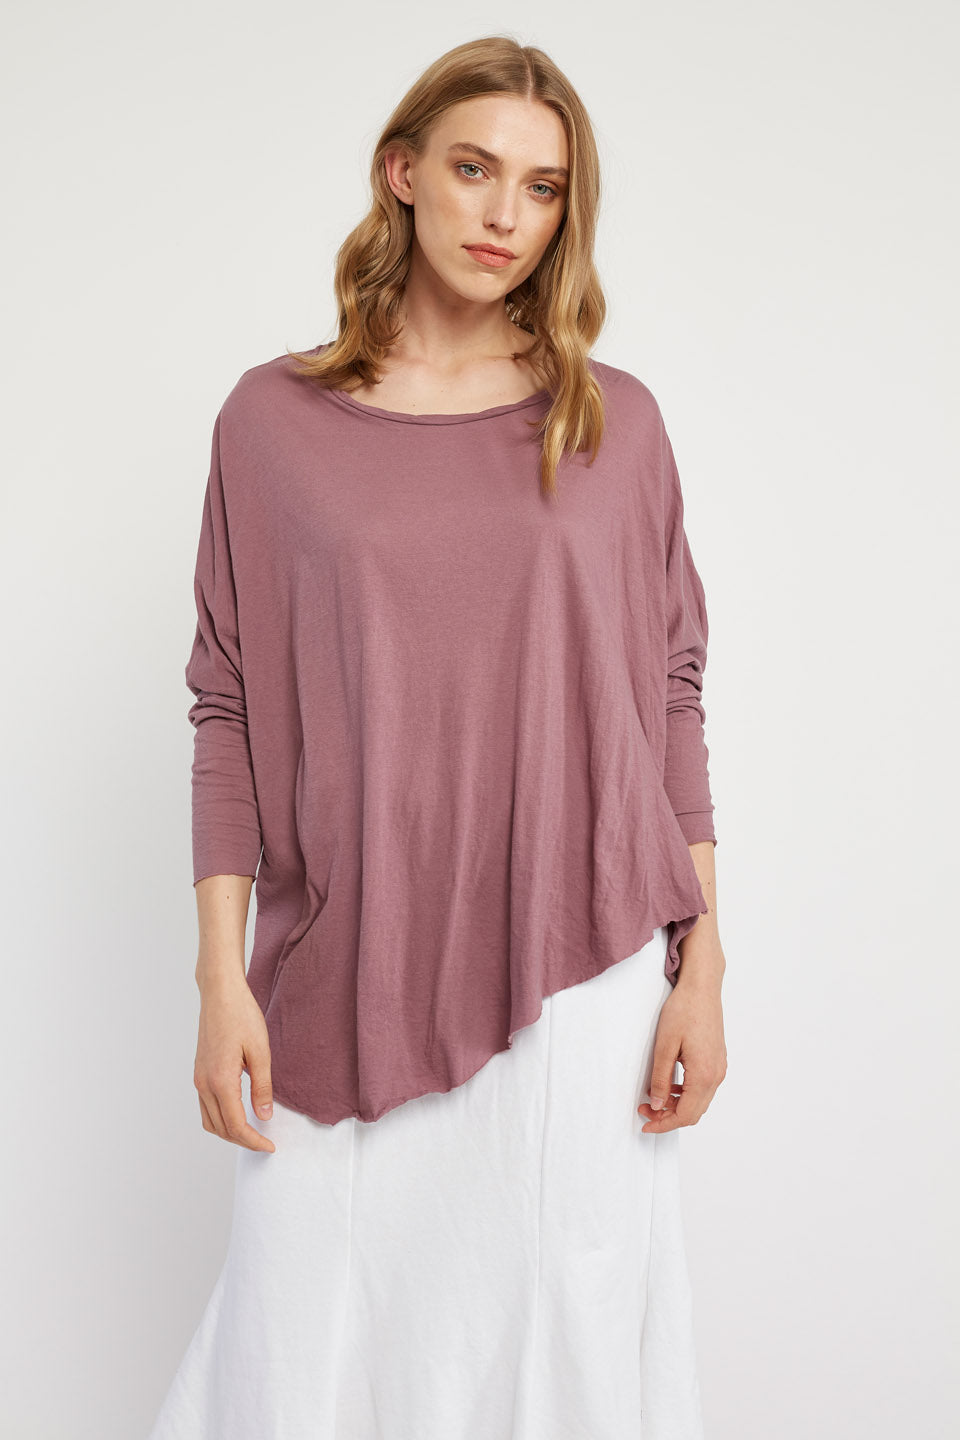 FAXI L/S TOP - PLUM